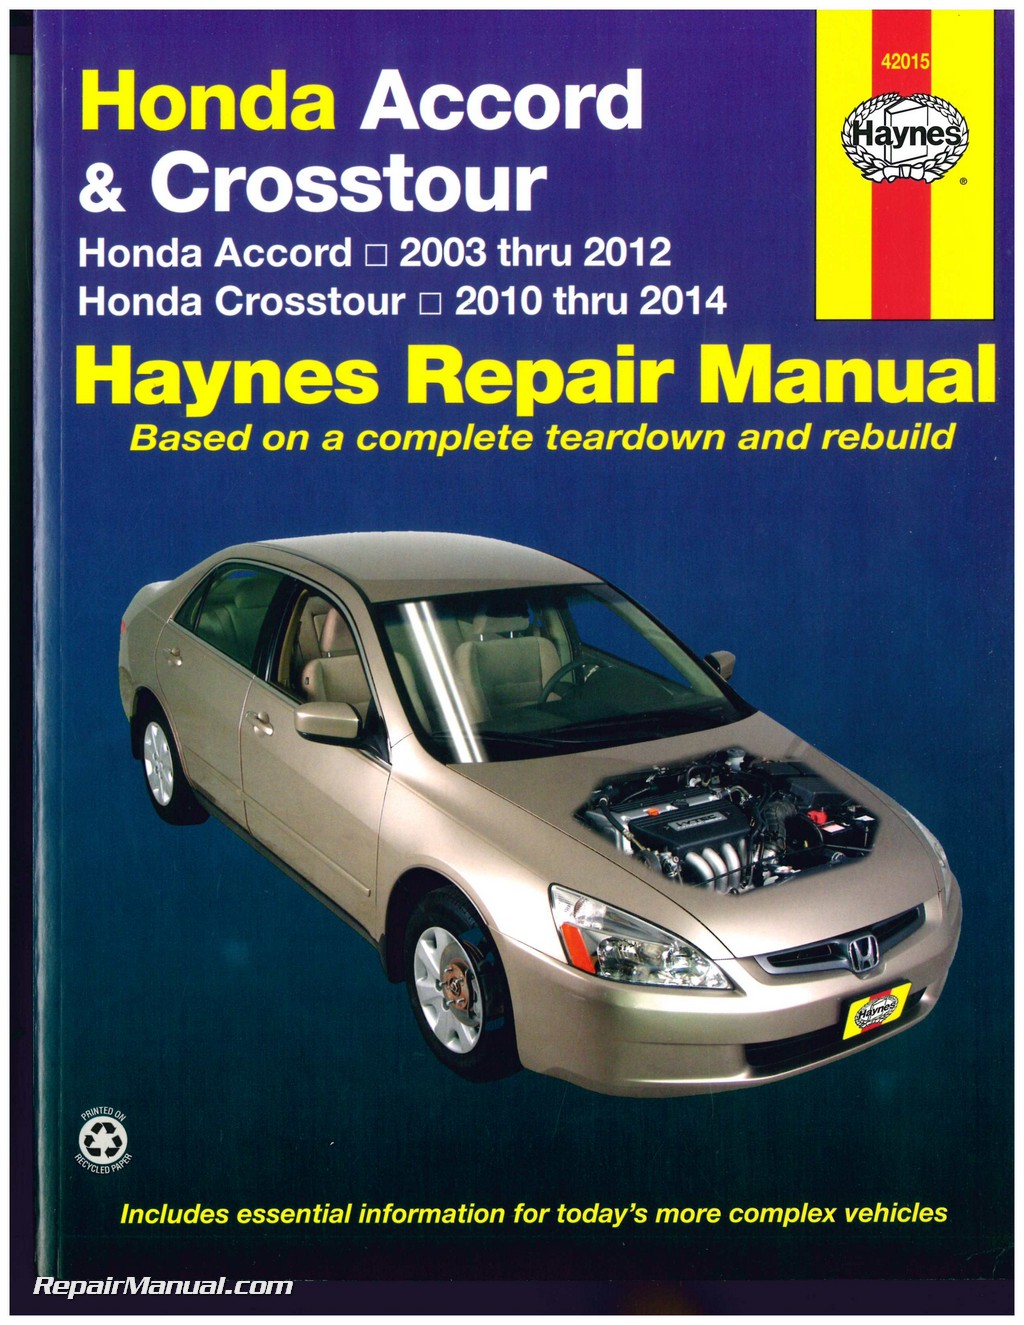 honda accord 2003 2012 crosstour 2010 2014 haynes. Black Bedroom Furniture Sets. Home Design Ideas